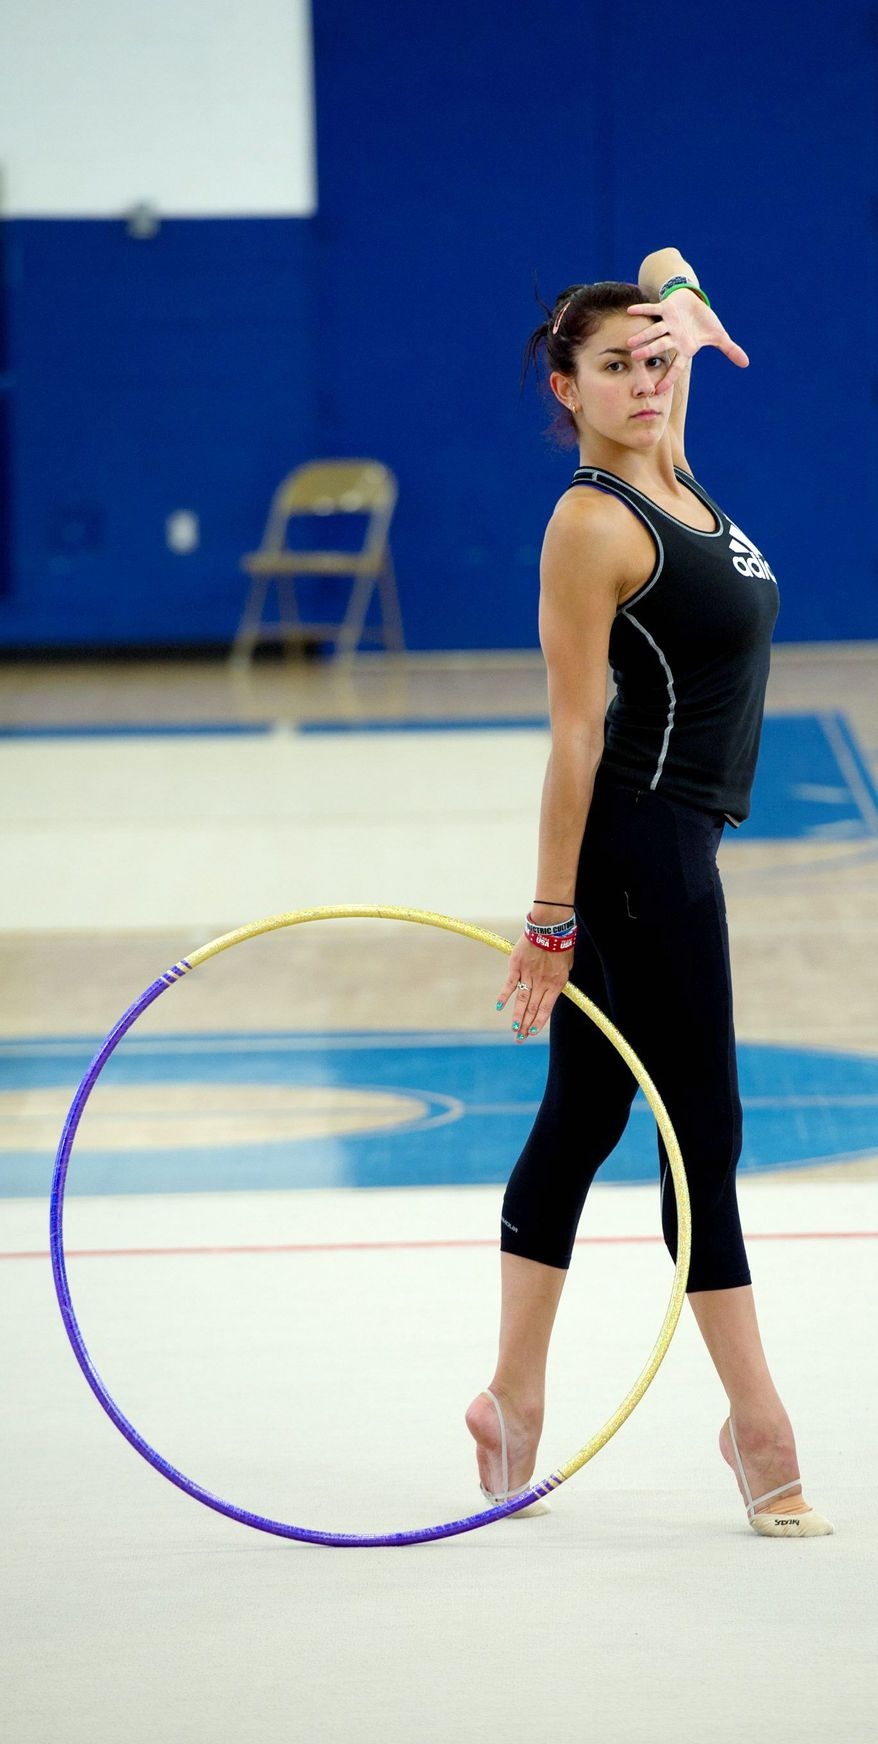 Bethesda, Md. native Julie Zetlin practices at the Katie Fitzgerald Youth Recreation Center in Darnestown, Md., on Wednesday, July 25, 2012 before heading to London to represent the United States in rythmic gymnastics in the 2012 Olympics. The 22-year-old has been doing rythmic gymastics for 18 years. She will compete Aug. 9 and 10. (Barbara L. Salisbury/The Washington Times)